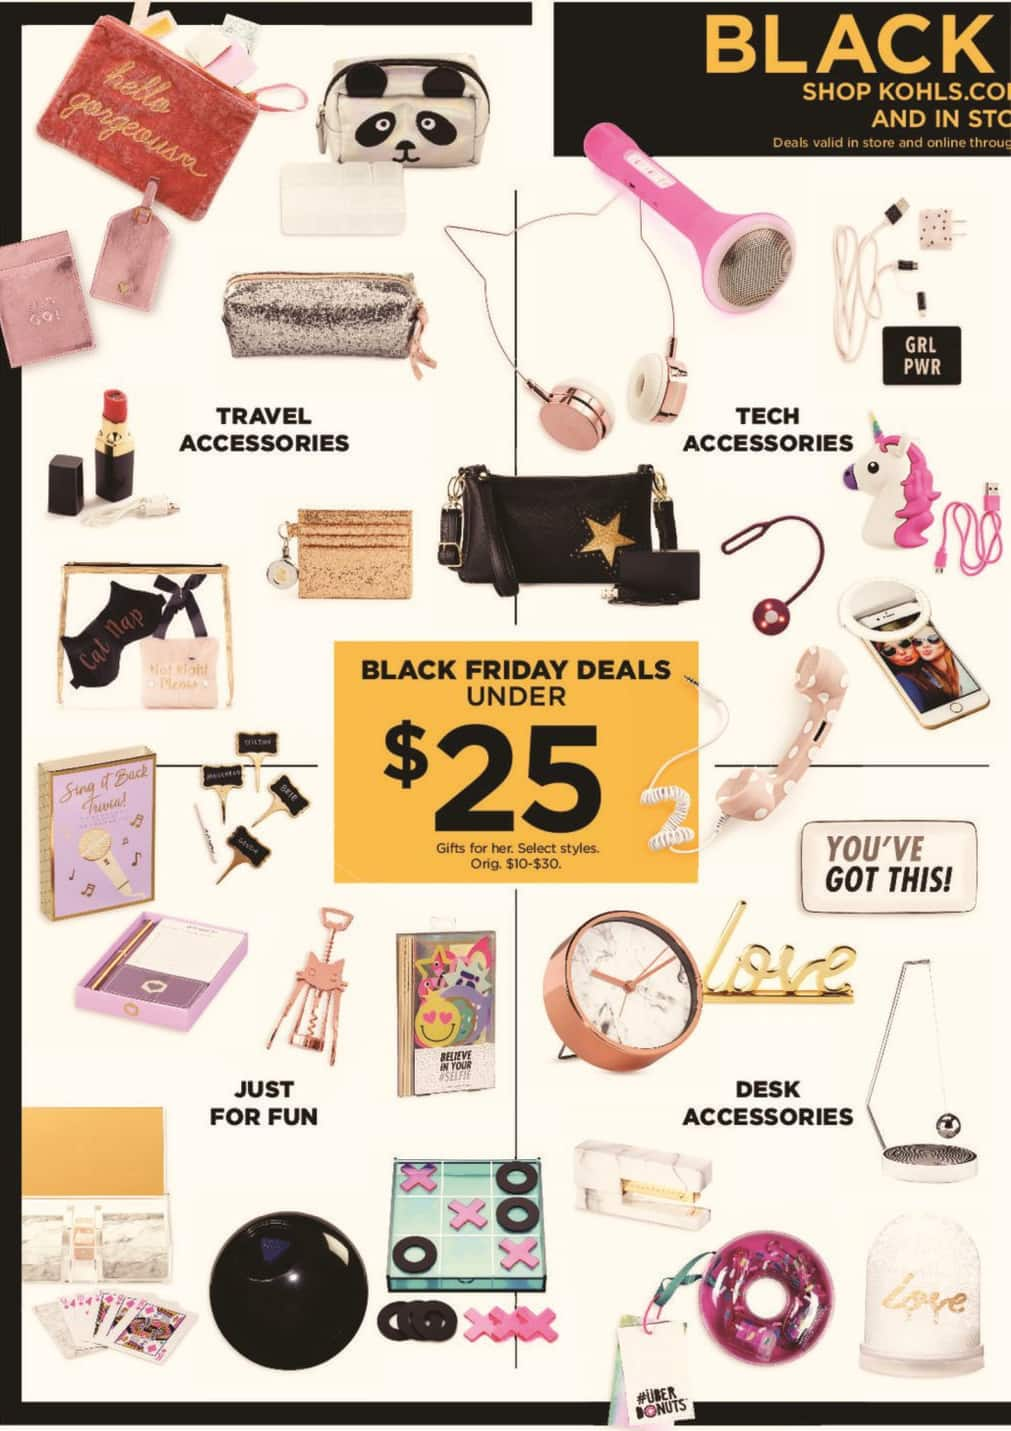 Kohl's Black Friday: Select Women's Gifts - $25 and Under